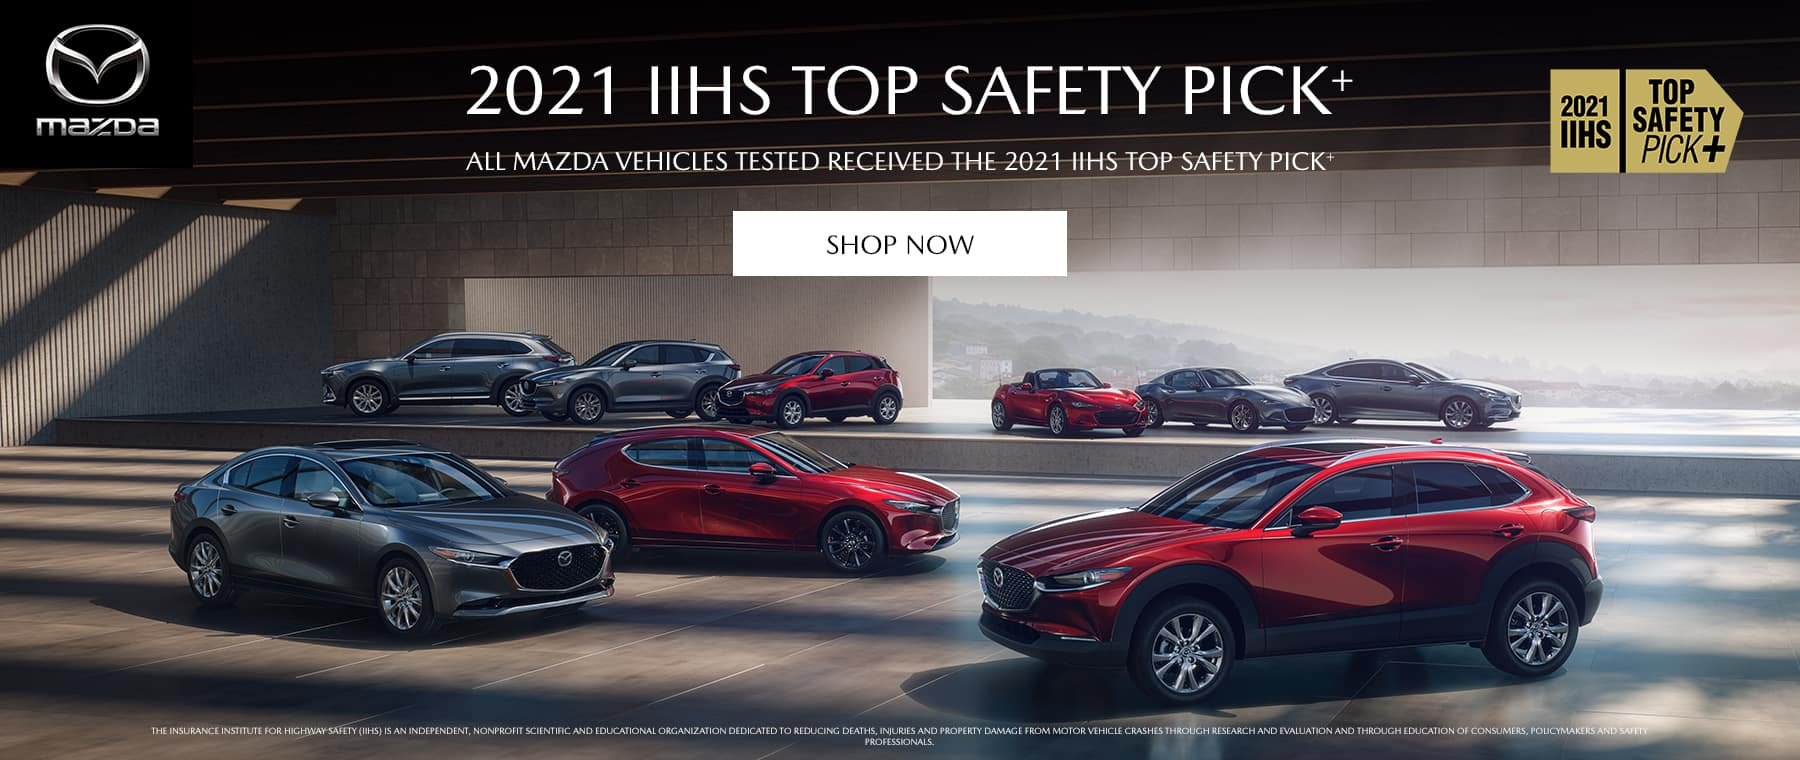 2021 IIHS Top Safety Pick